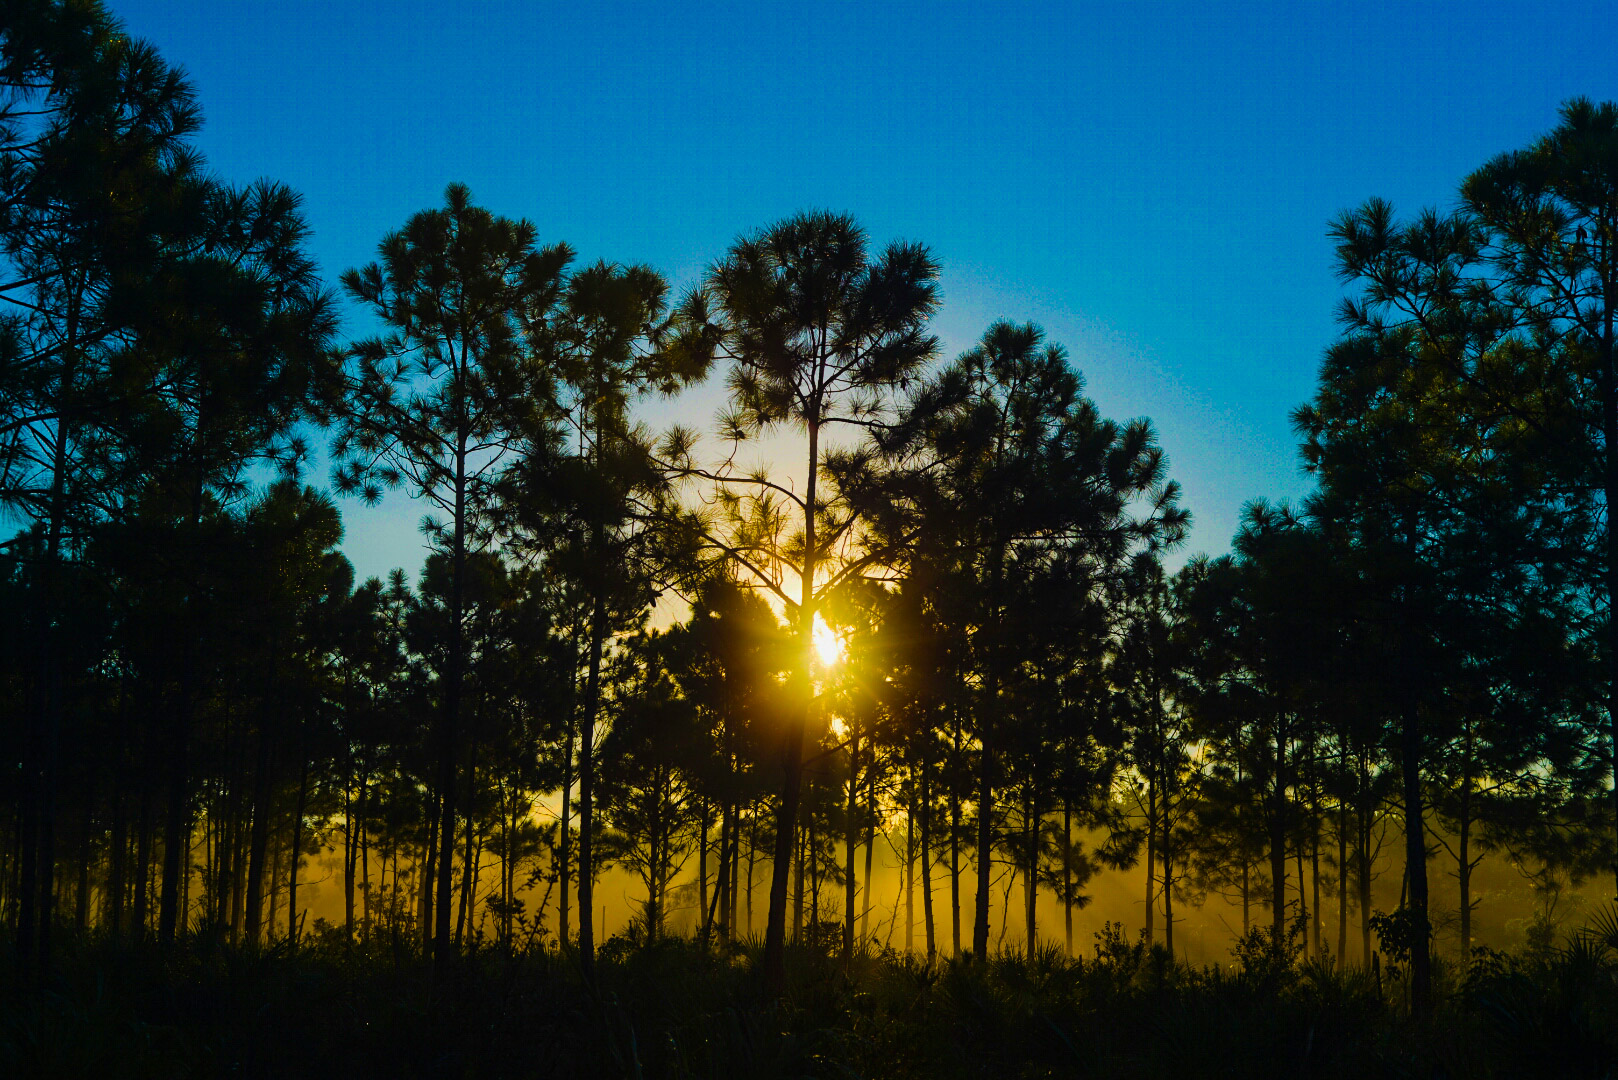 Landscape photo of the sunset over the endangered pine rockland, taken during a private group hike.